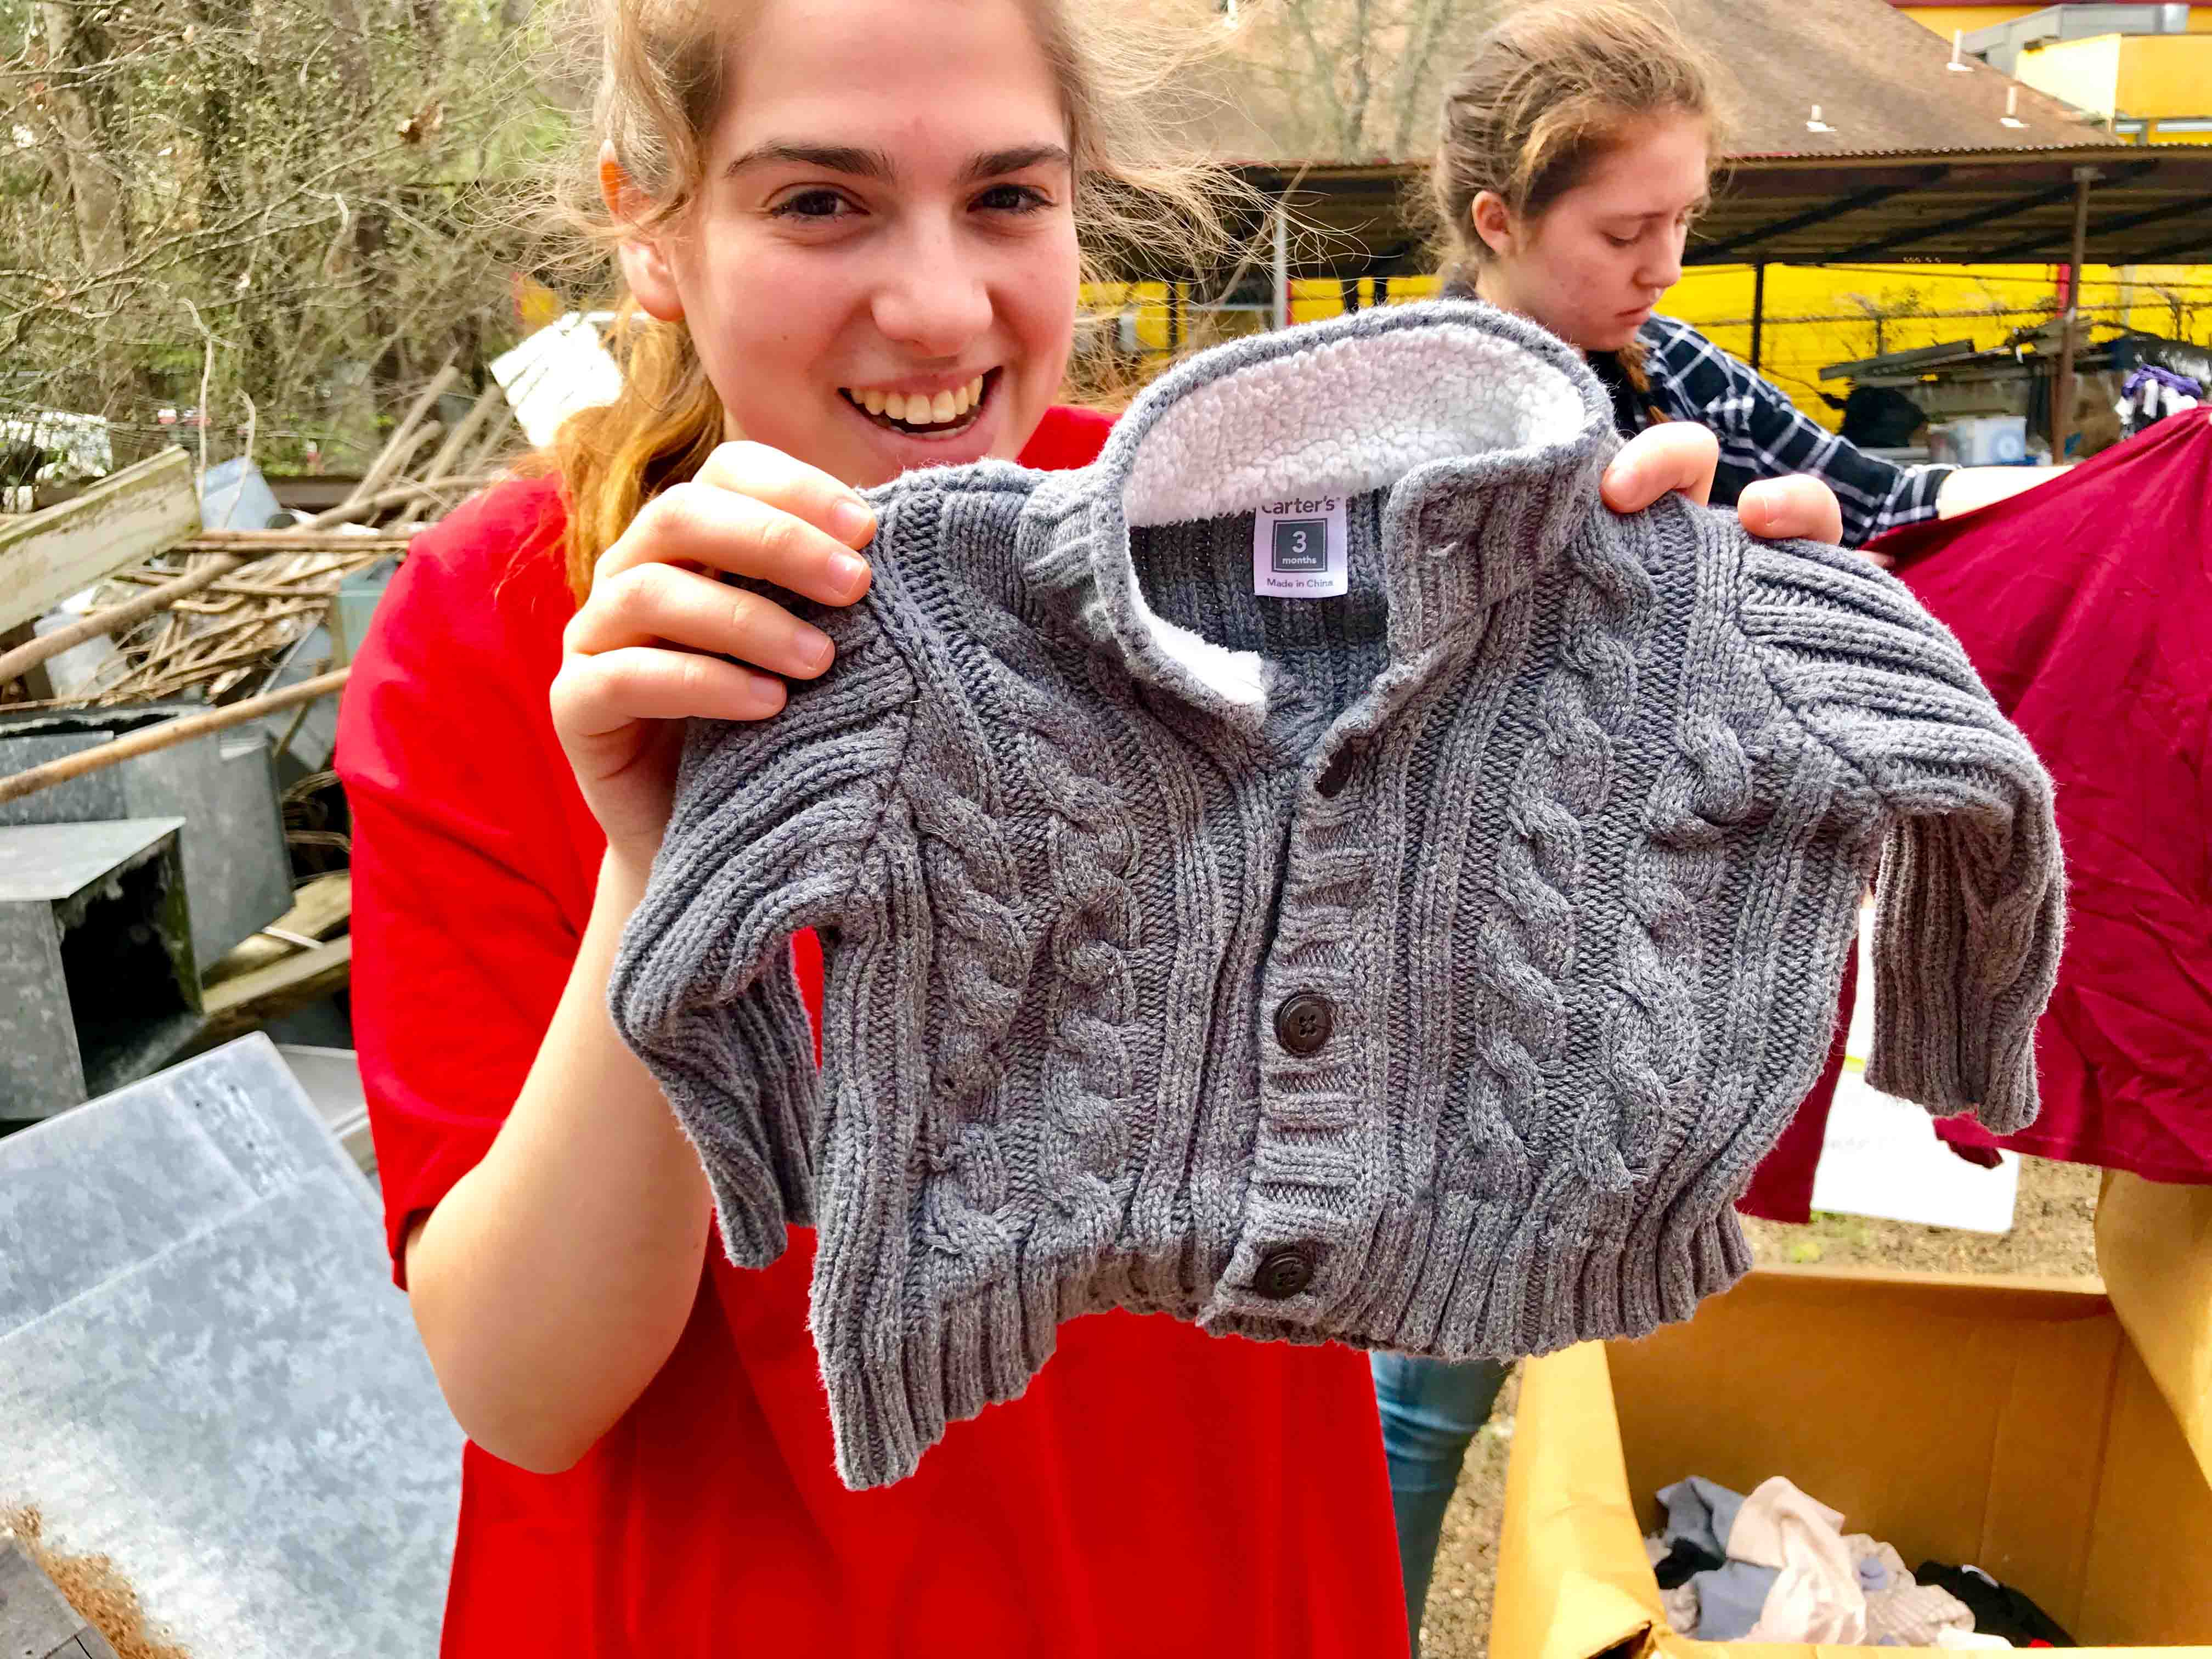 A student holds up a children's sweater during the Alternative School Break trip to serve and learn about the Texas criminal justice system.